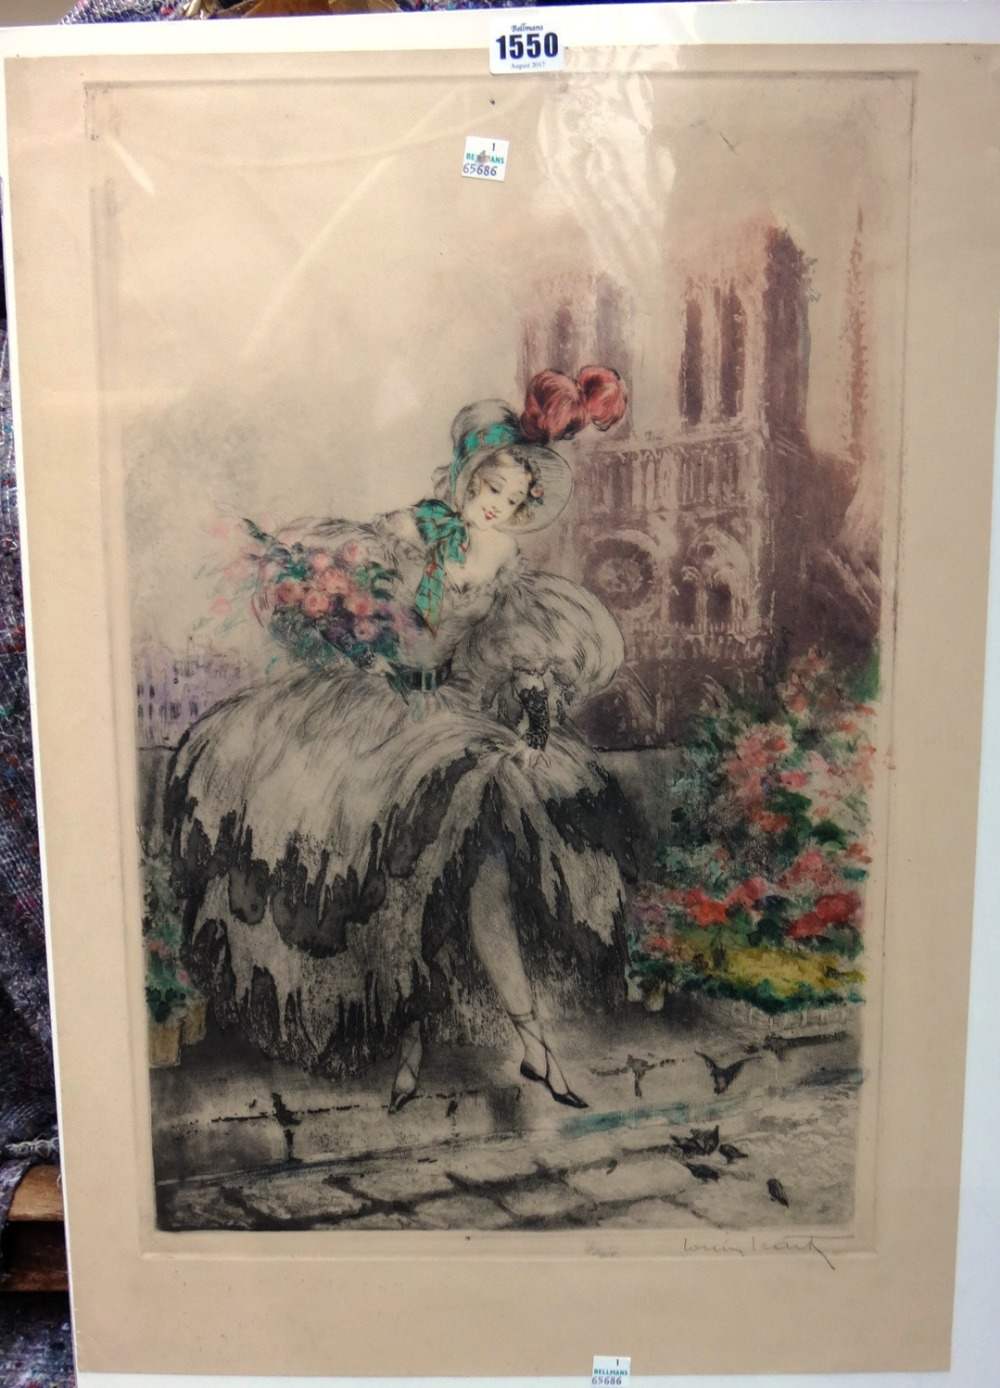 Lot 1550 - Louis Icart (1888-1950), Musette, colour etching, signed, unframed, 52.5cm x 34.5cm.